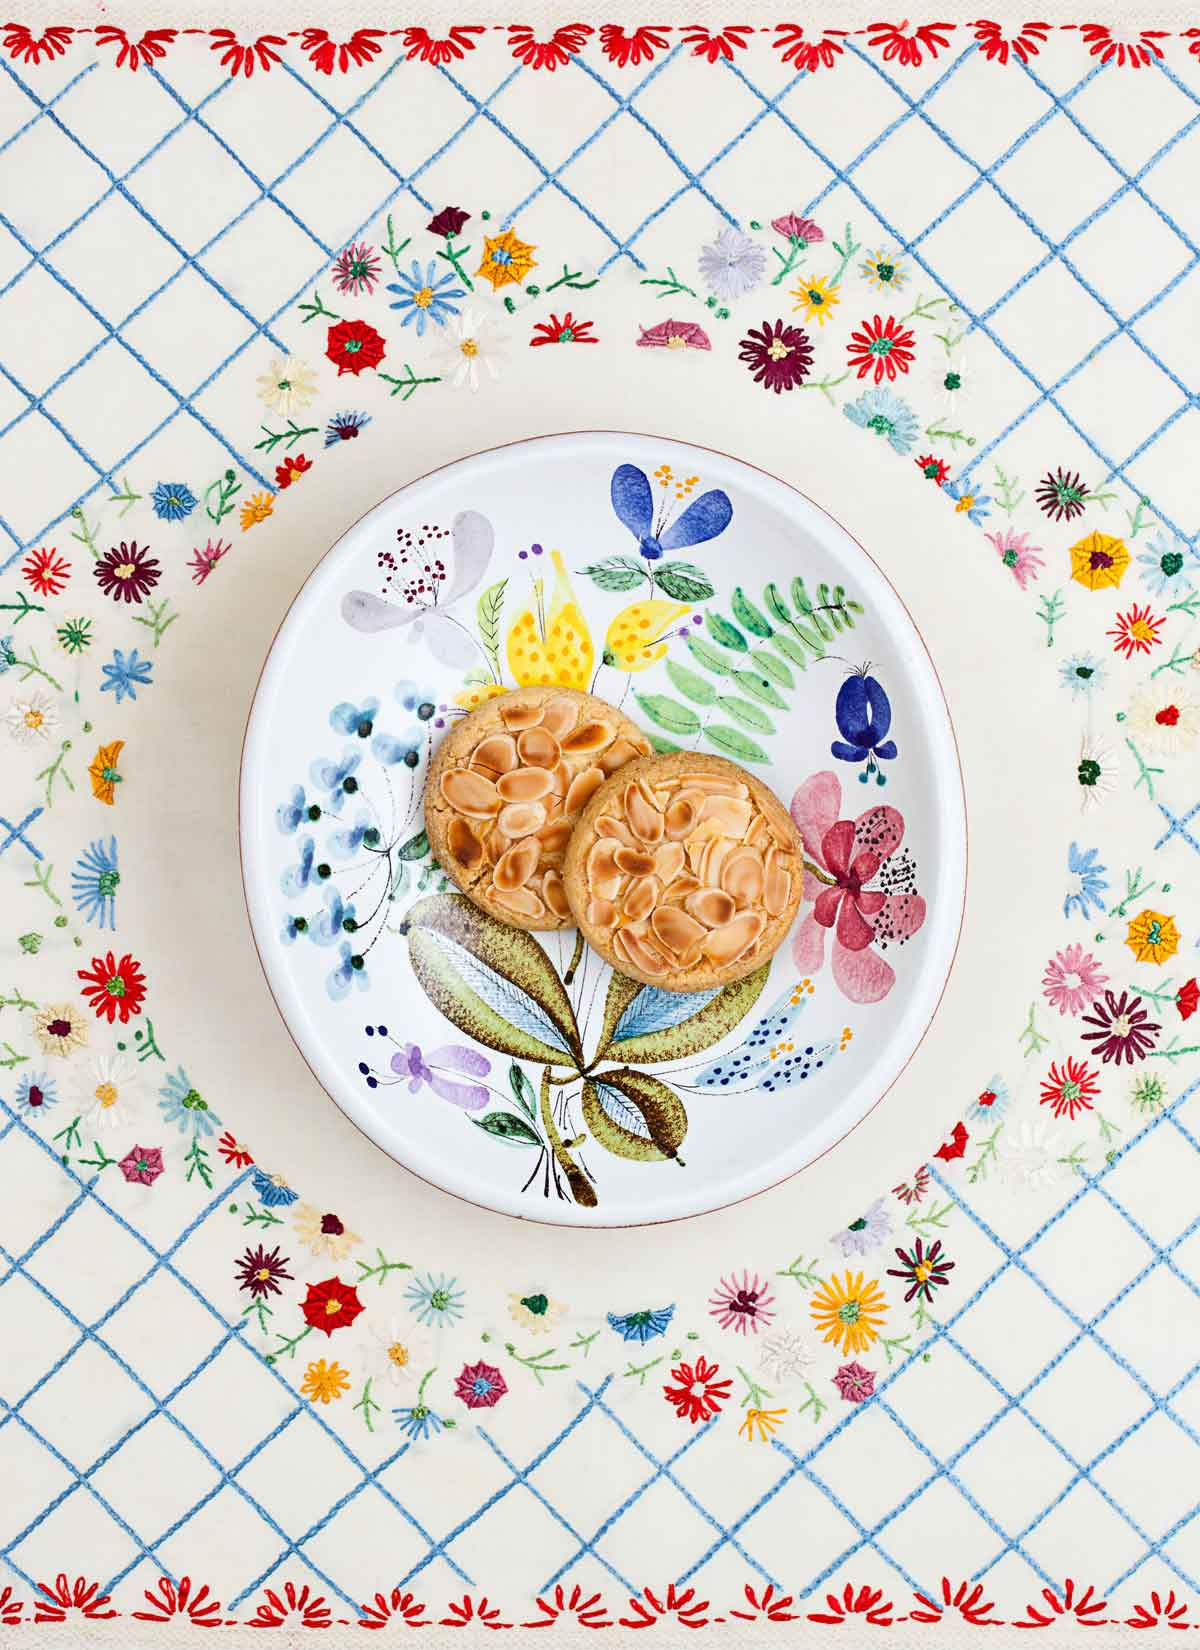 Two almond-topped cookies made by Cenk Sönmezsoy on a decorative plate and cloth.